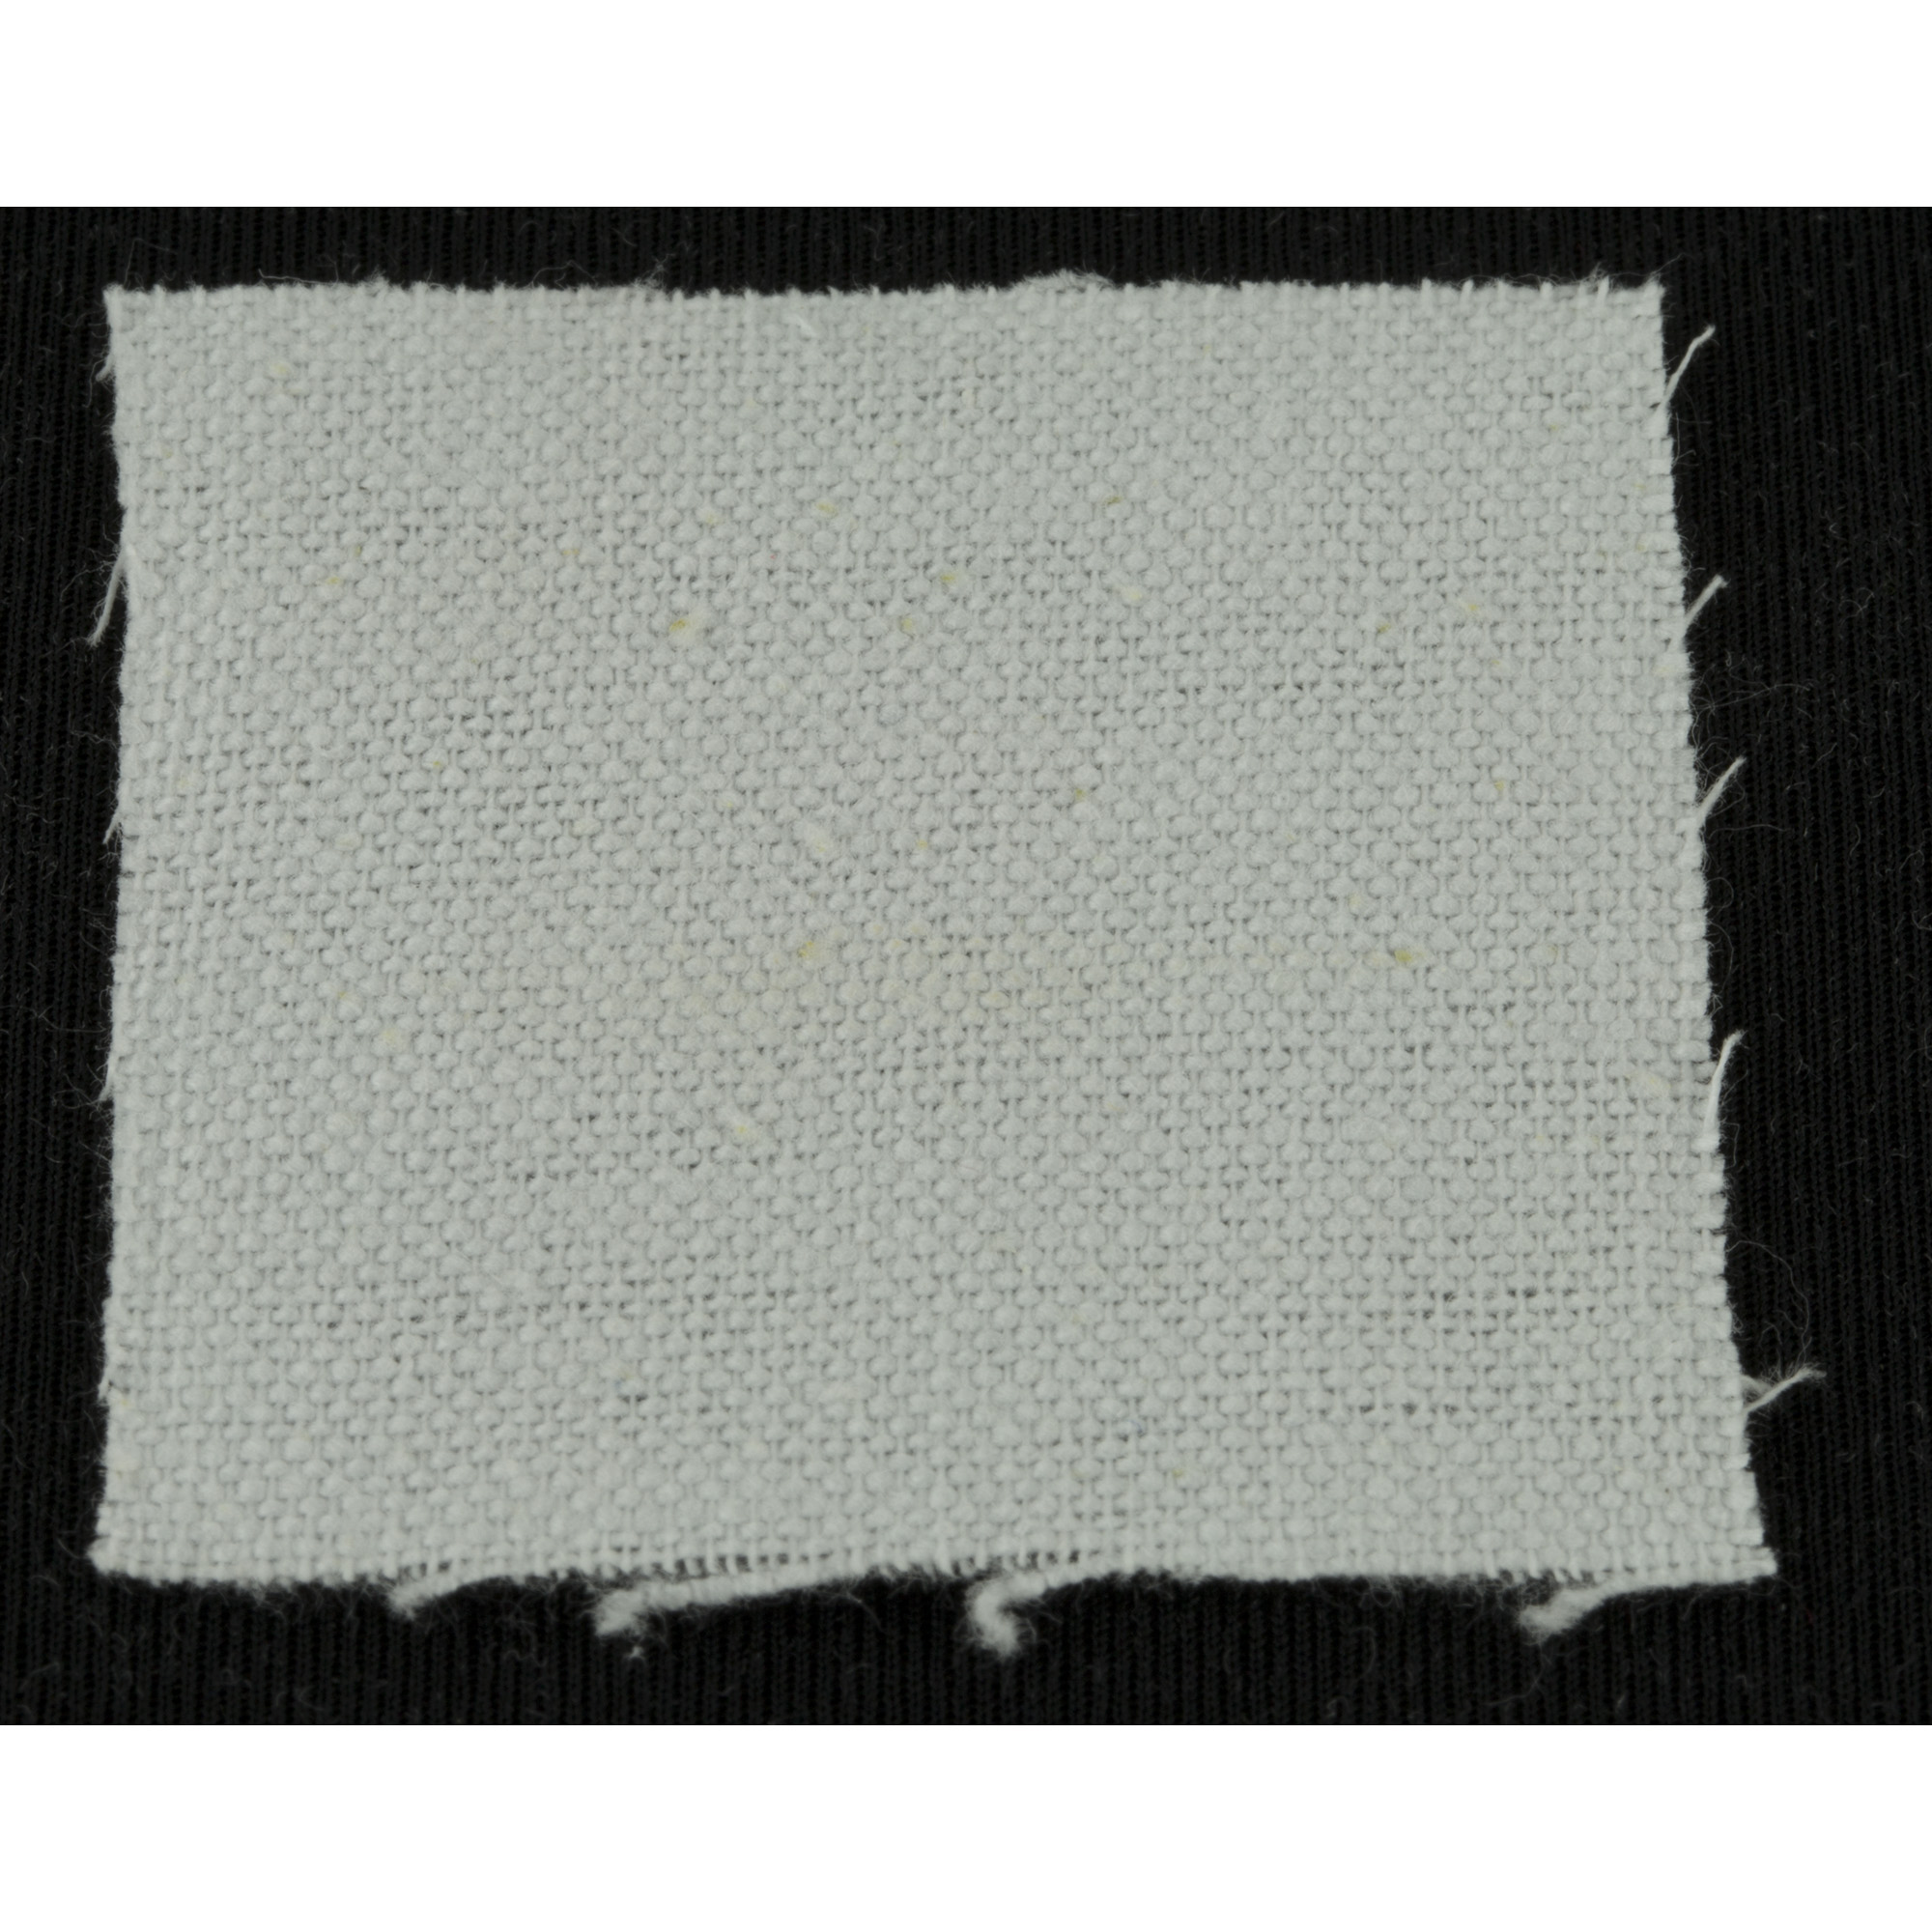 These patches are precision cut to ensure the proper fit and maximum cleaning performance when used in conjunction with Kleen-Bore cleaning jags or patch holders. Premium 100% cotton flannel provides maximum absorbency and bore protection.